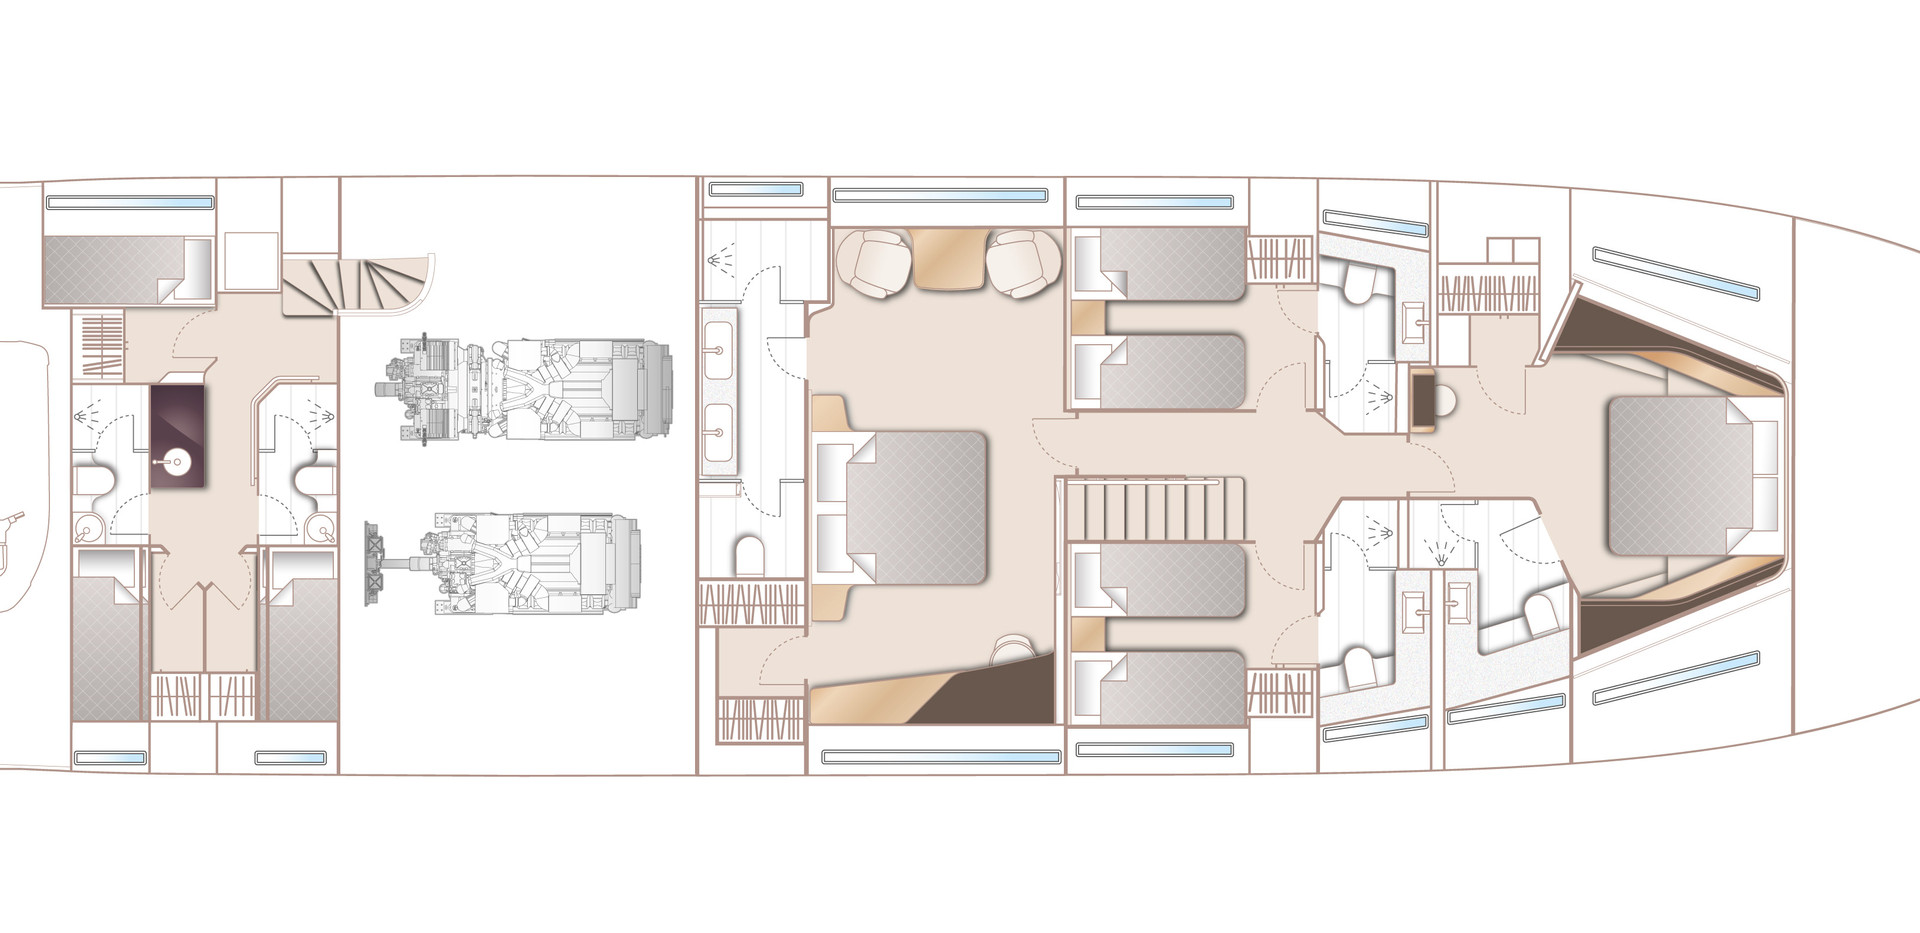 y95-layout-lower-deck-optional-crew-area